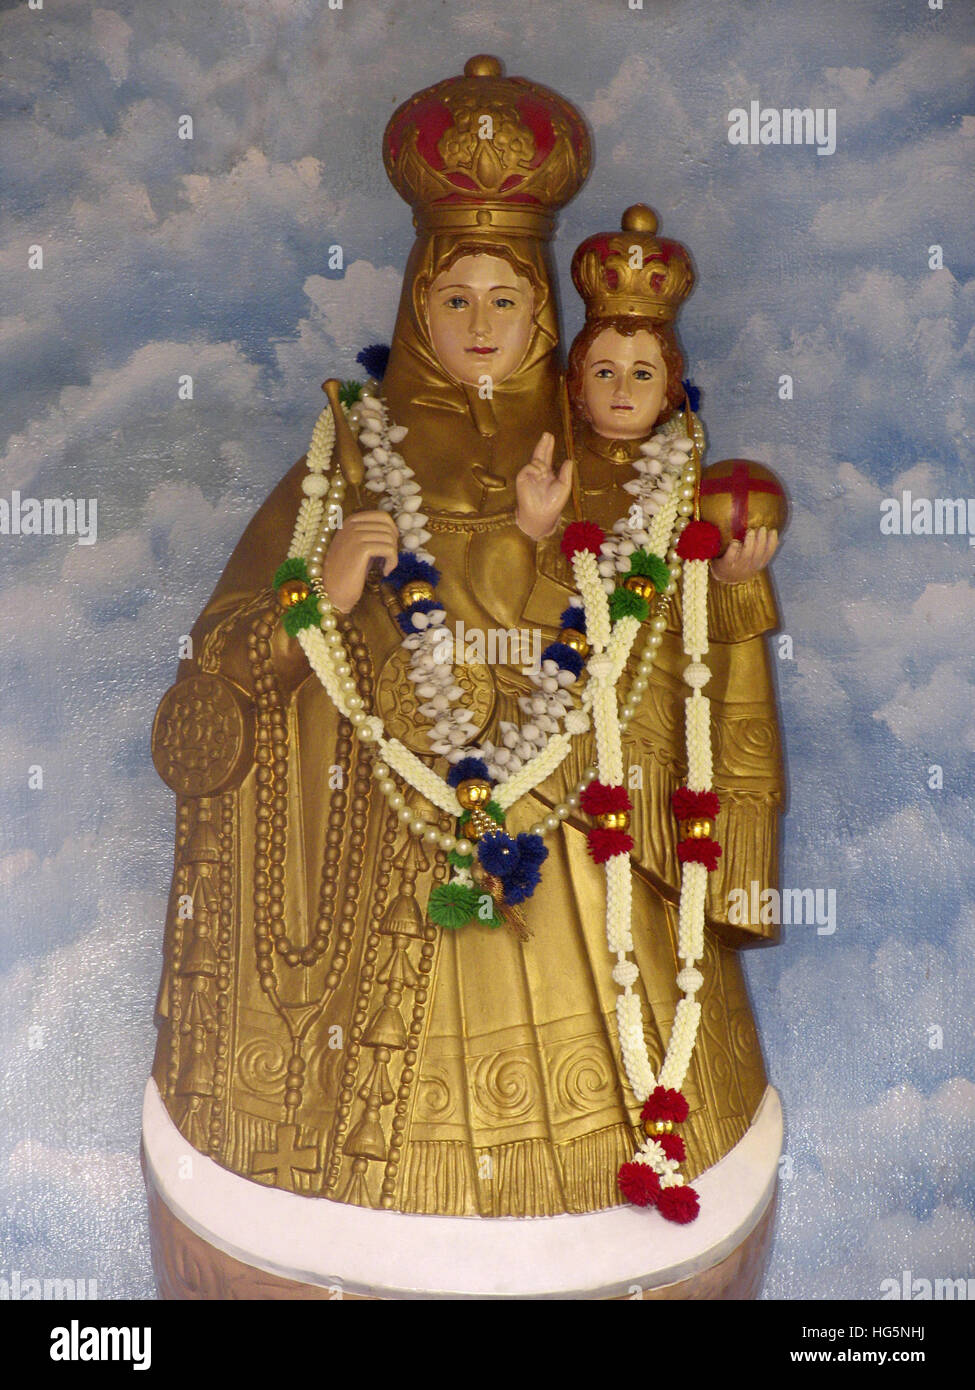 Jesus Hd Live Wallpaper Free Download Statues Of Mother Mary And Jesus Christ At Nelliyampathy